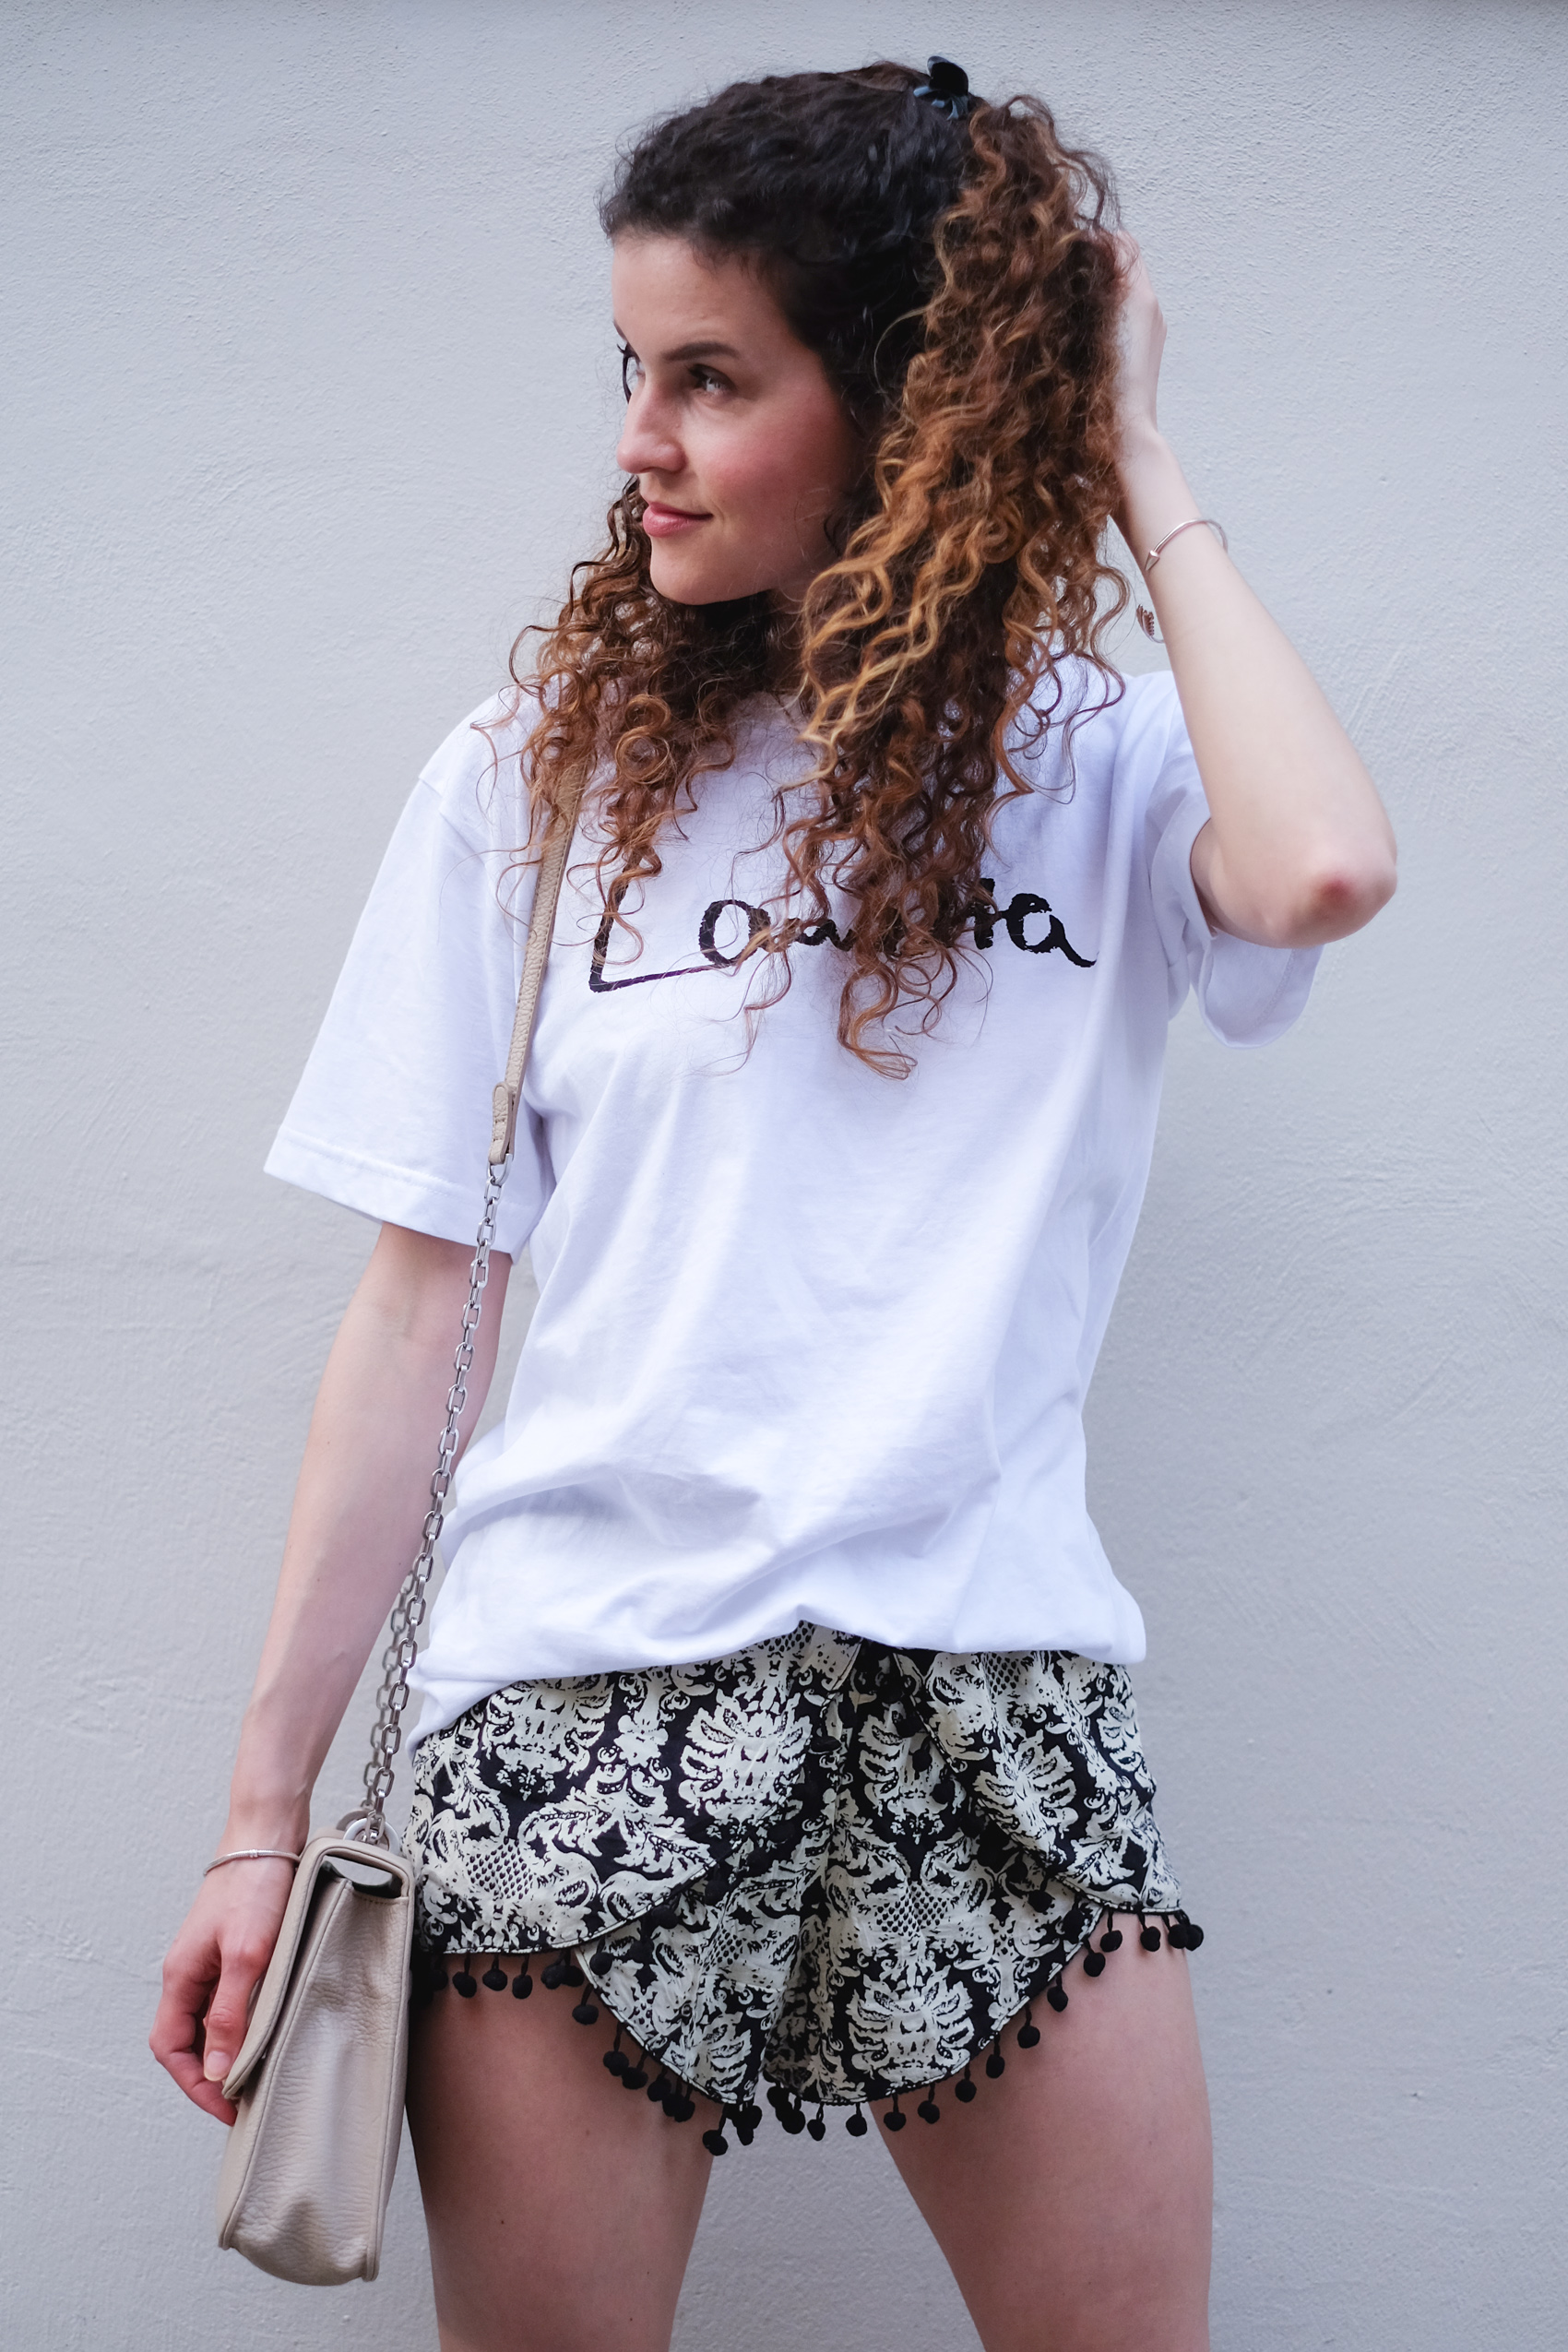 lametta t-shirt (2 of 4)